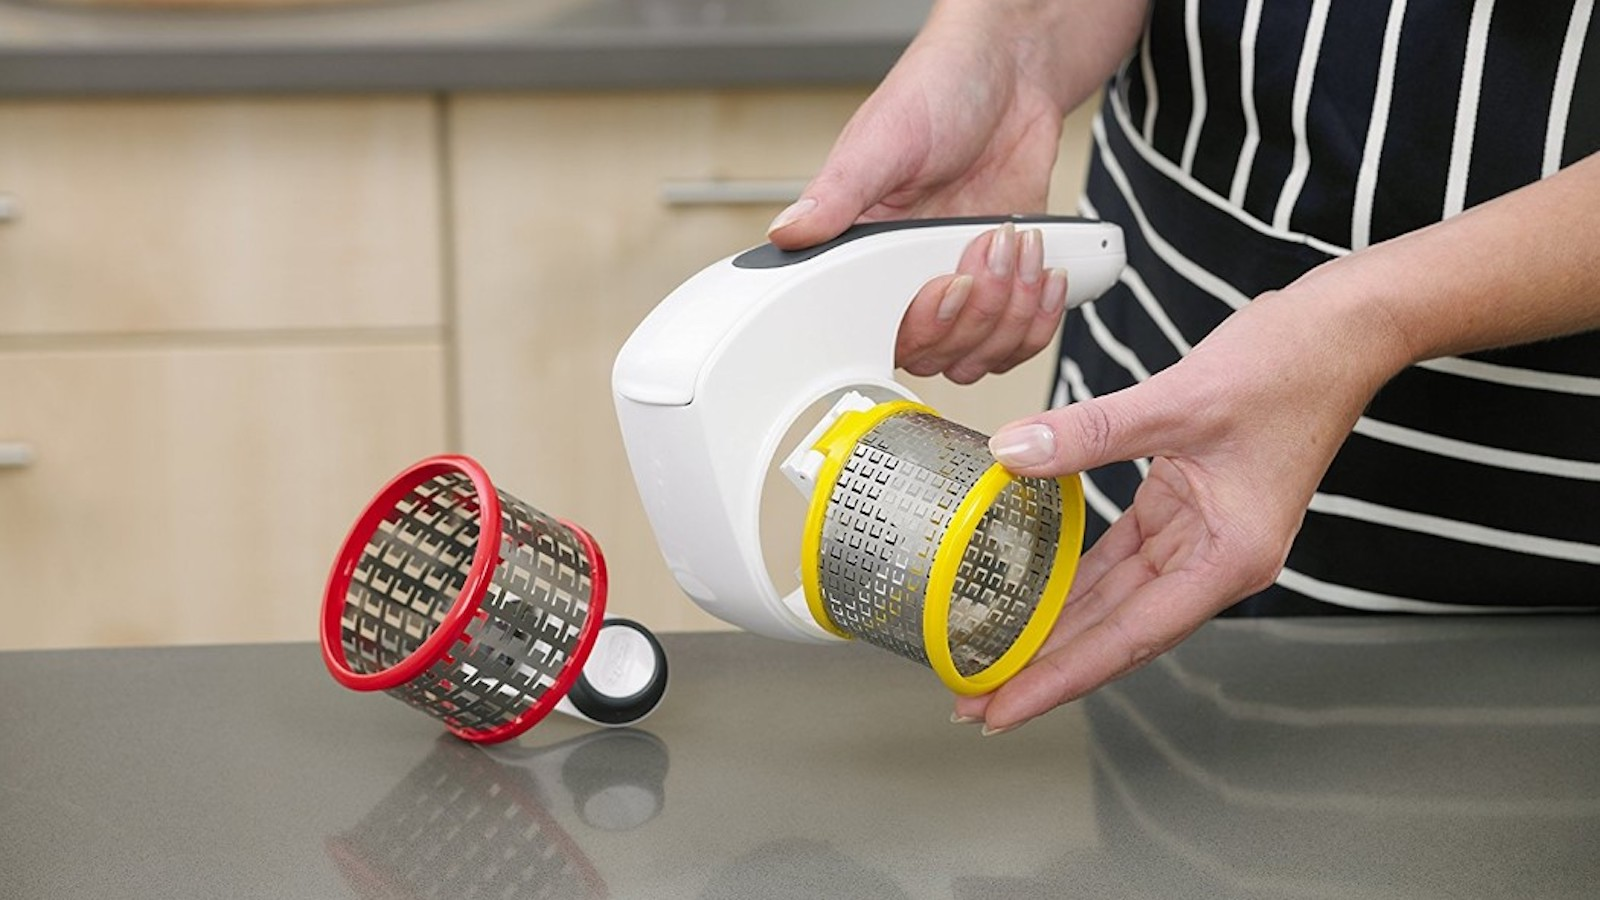 Zyliss food slicer quickly grates cheese to save you time